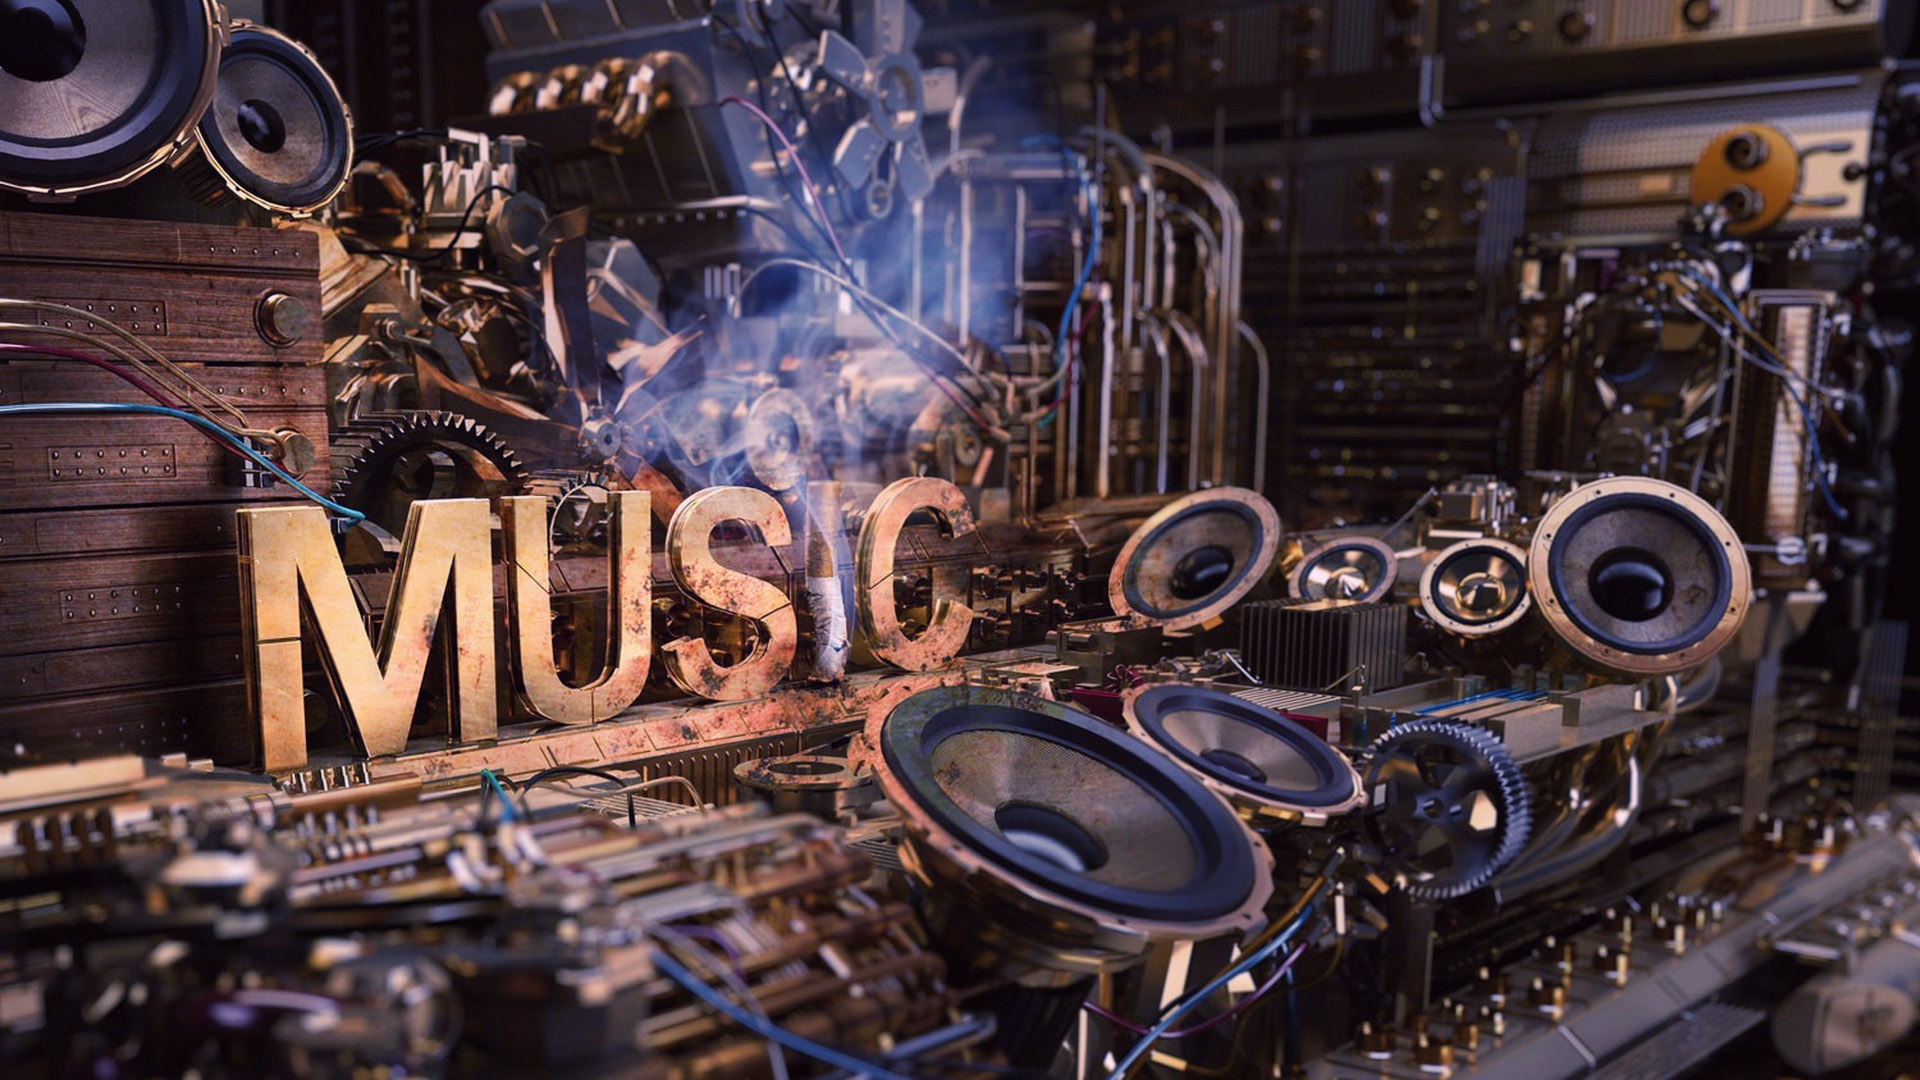 Recording Studio Background Wallpaper Images Pictures   Becuo 1920x1080